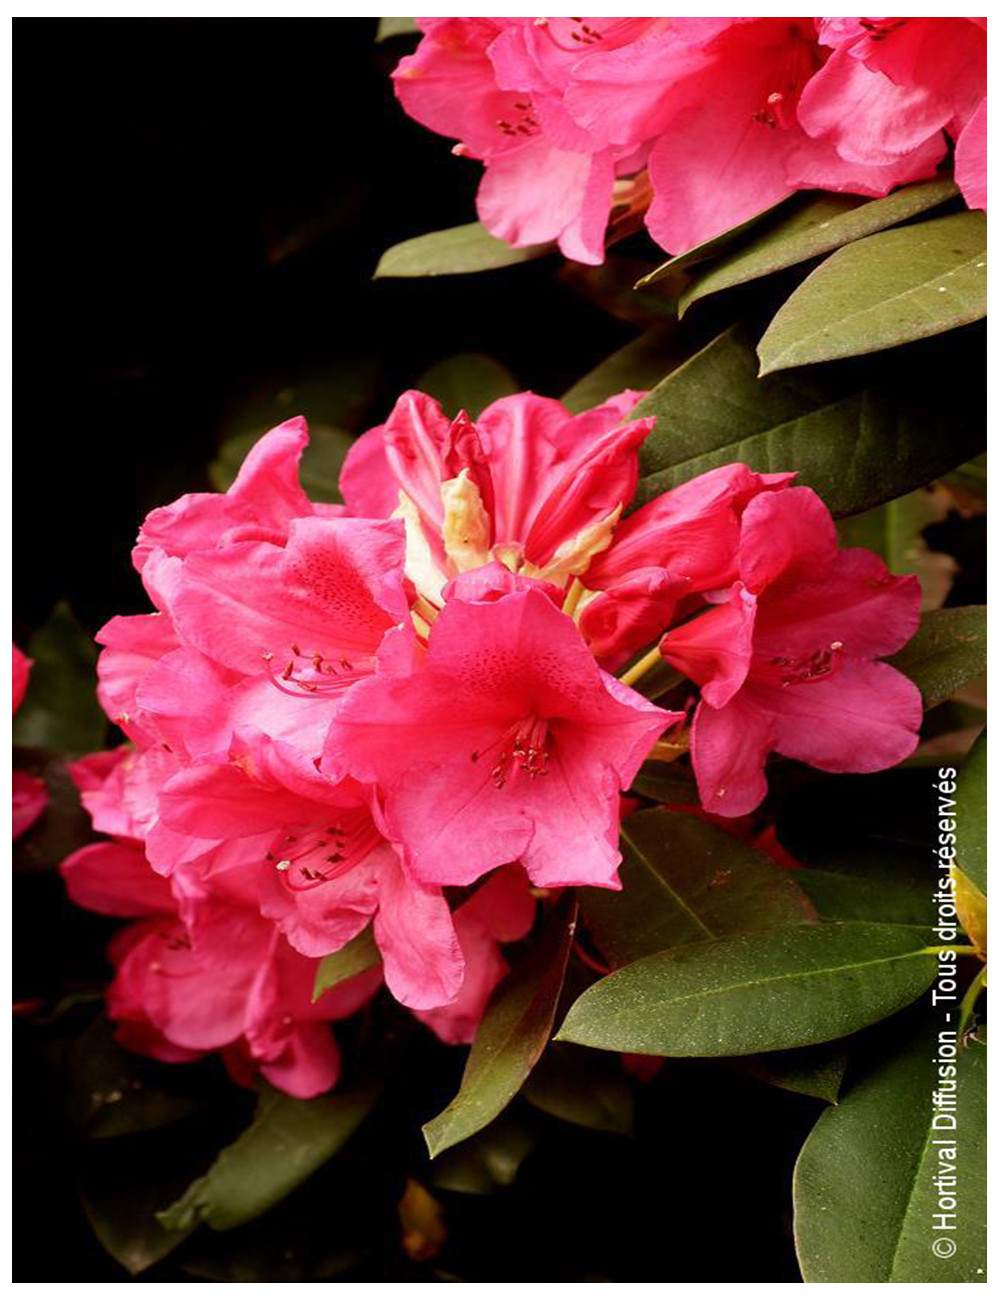 RHODODENDRON hybride ANNA ROSE WHITNEY (Rhododendron)